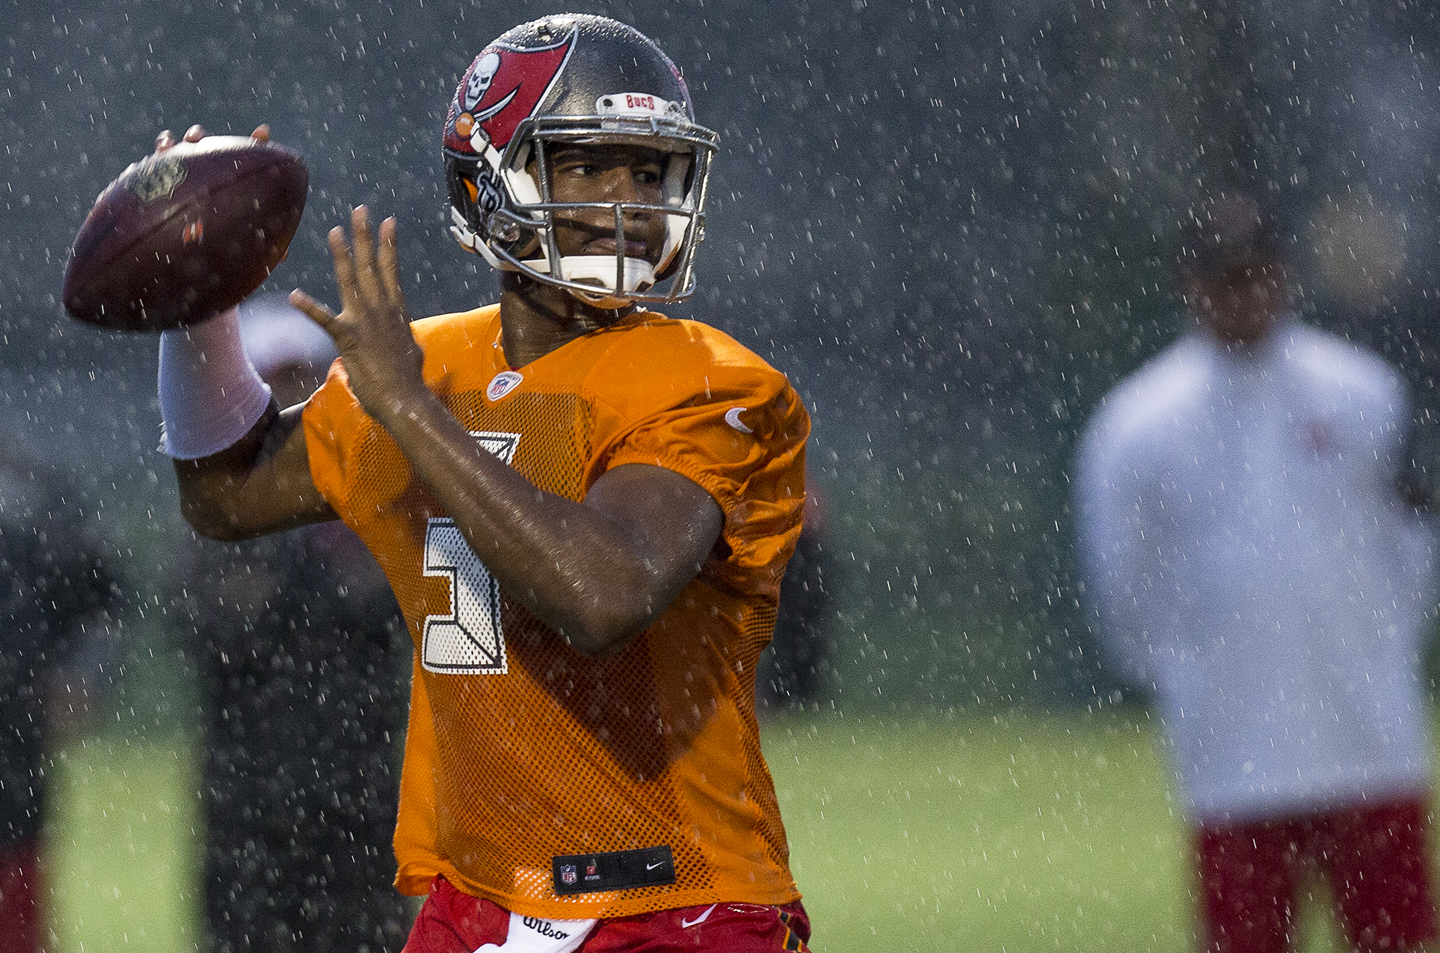 Quarterback Jameis Winston #3 of the Tampa Bay Buccaneers on a pass play during the first day of Training Camp at the University of South Florida on August 1, 2015 in Tampa, Florida.